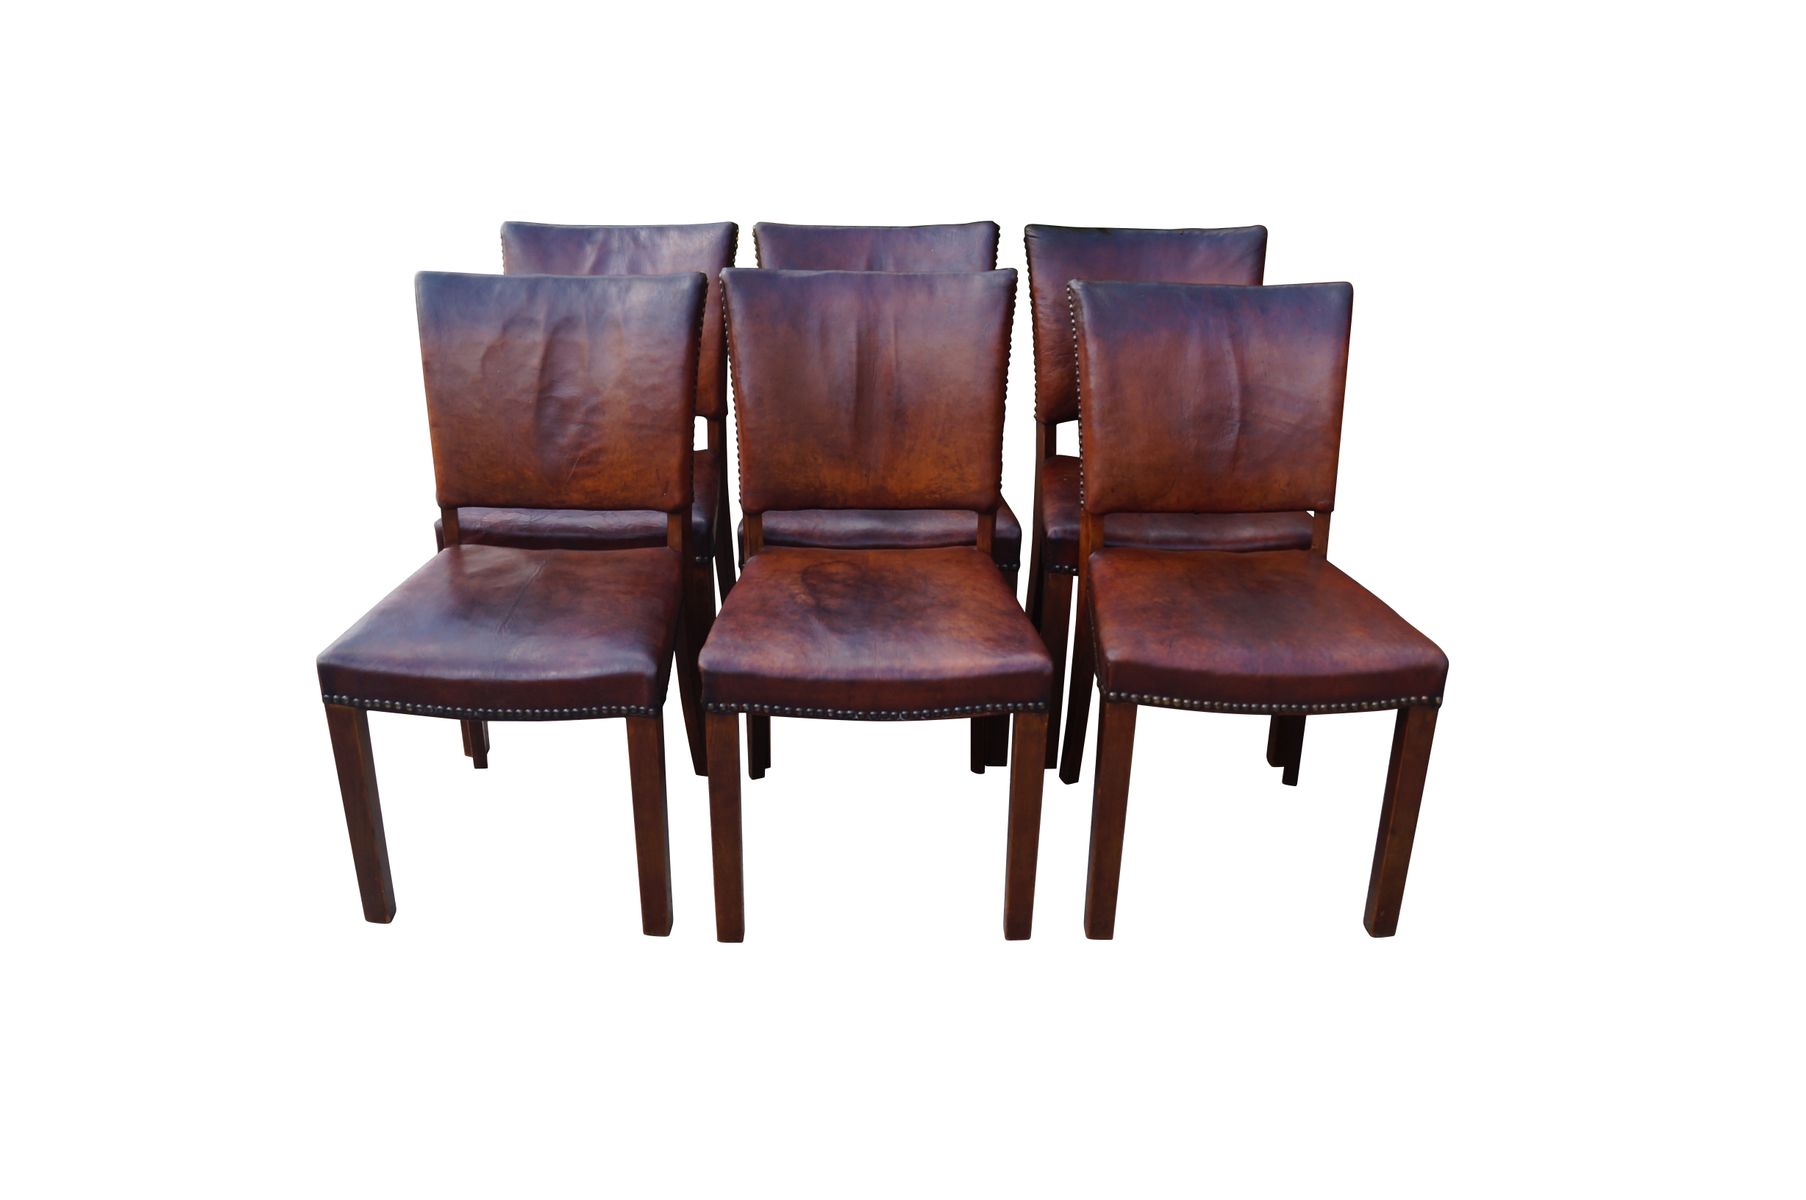 Danish Dining Room Chair by Jacob Kj¦r 1940s Set of 6 for sale